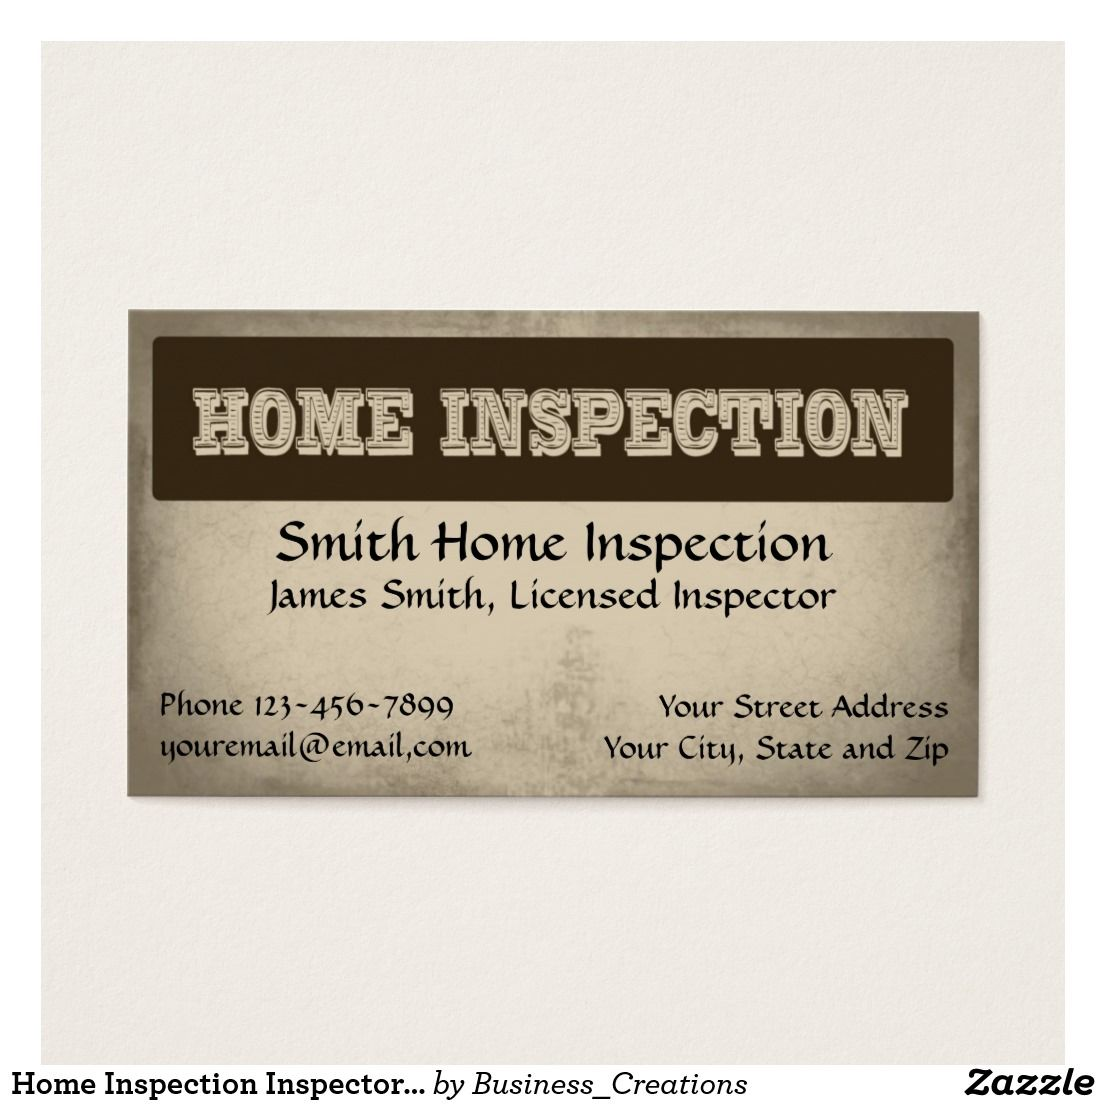 Home Inspection Inspector Business Card | Business cards and Business